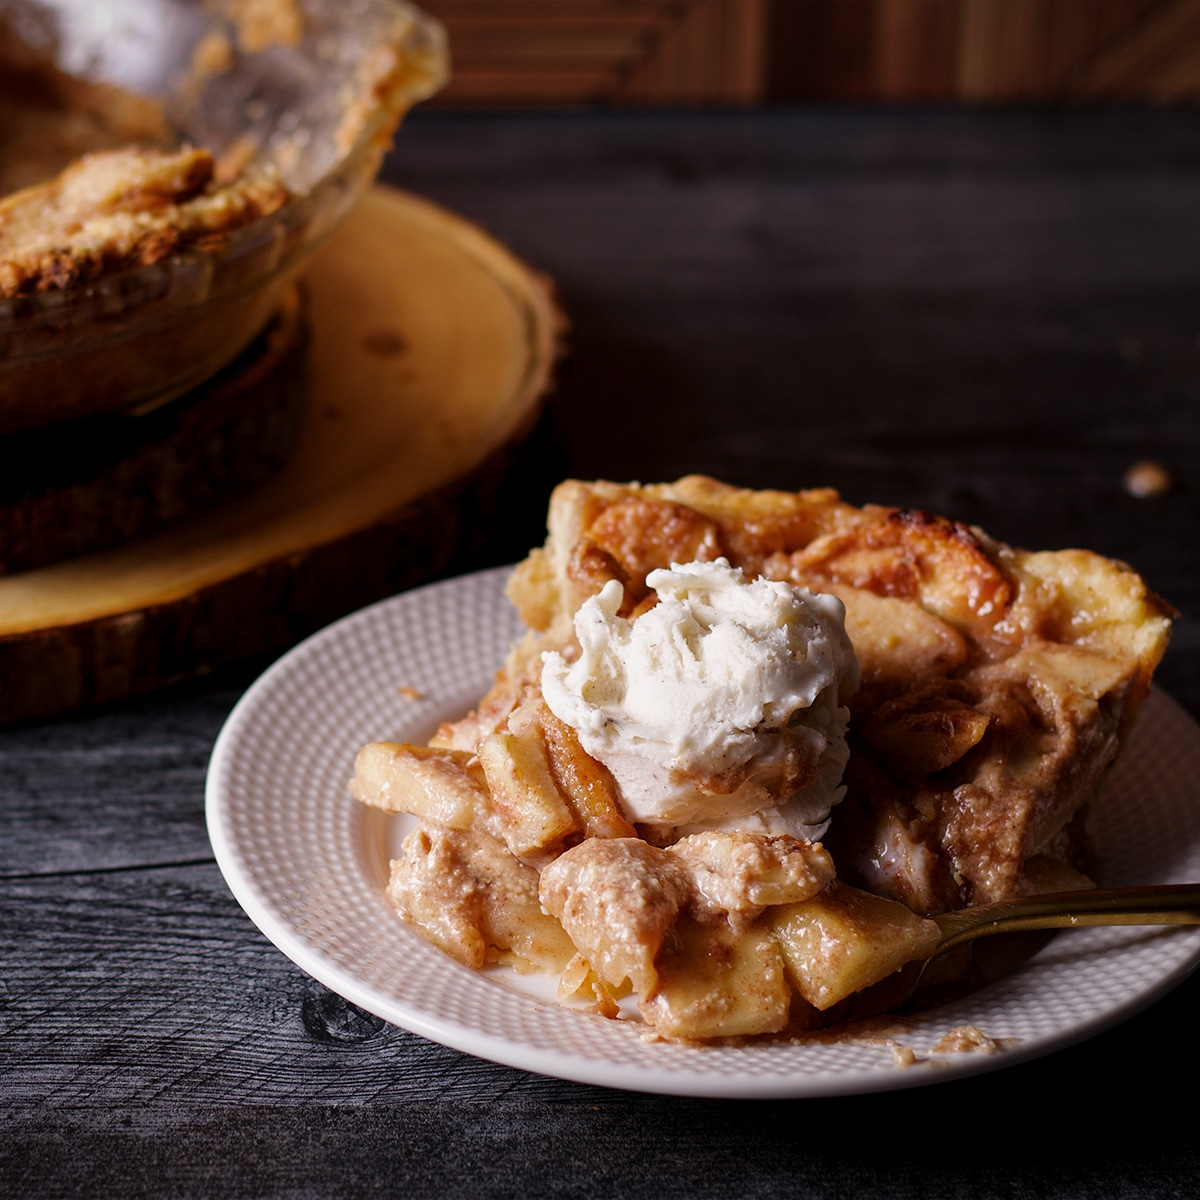 A slice of German Apple Pie topped with a scoop of vanilla ice cream.